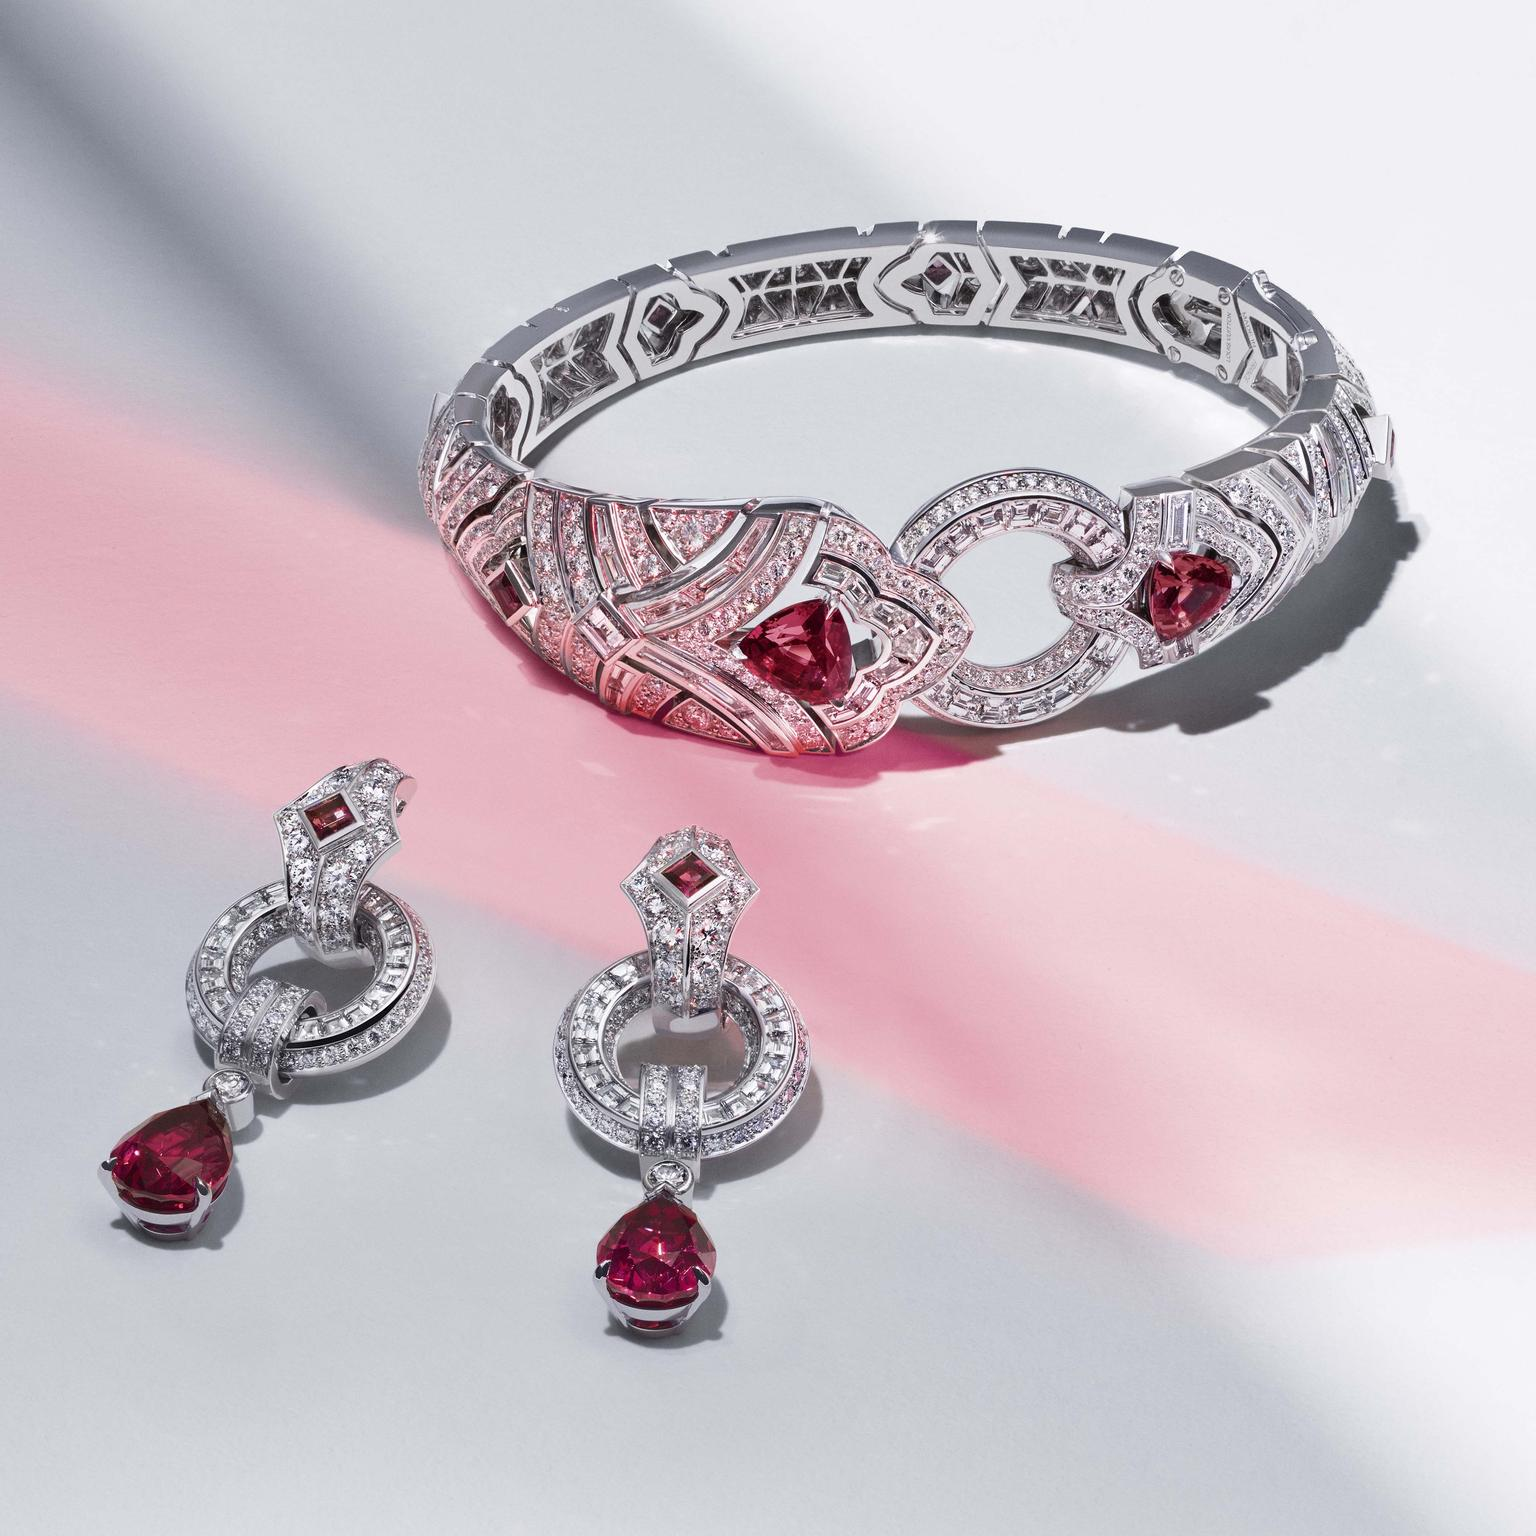 louis_vuitton_riders_of_the_knights_the_la_cavaliere_diamond_and_red_spinel_bracelet_and_earrings_jpg